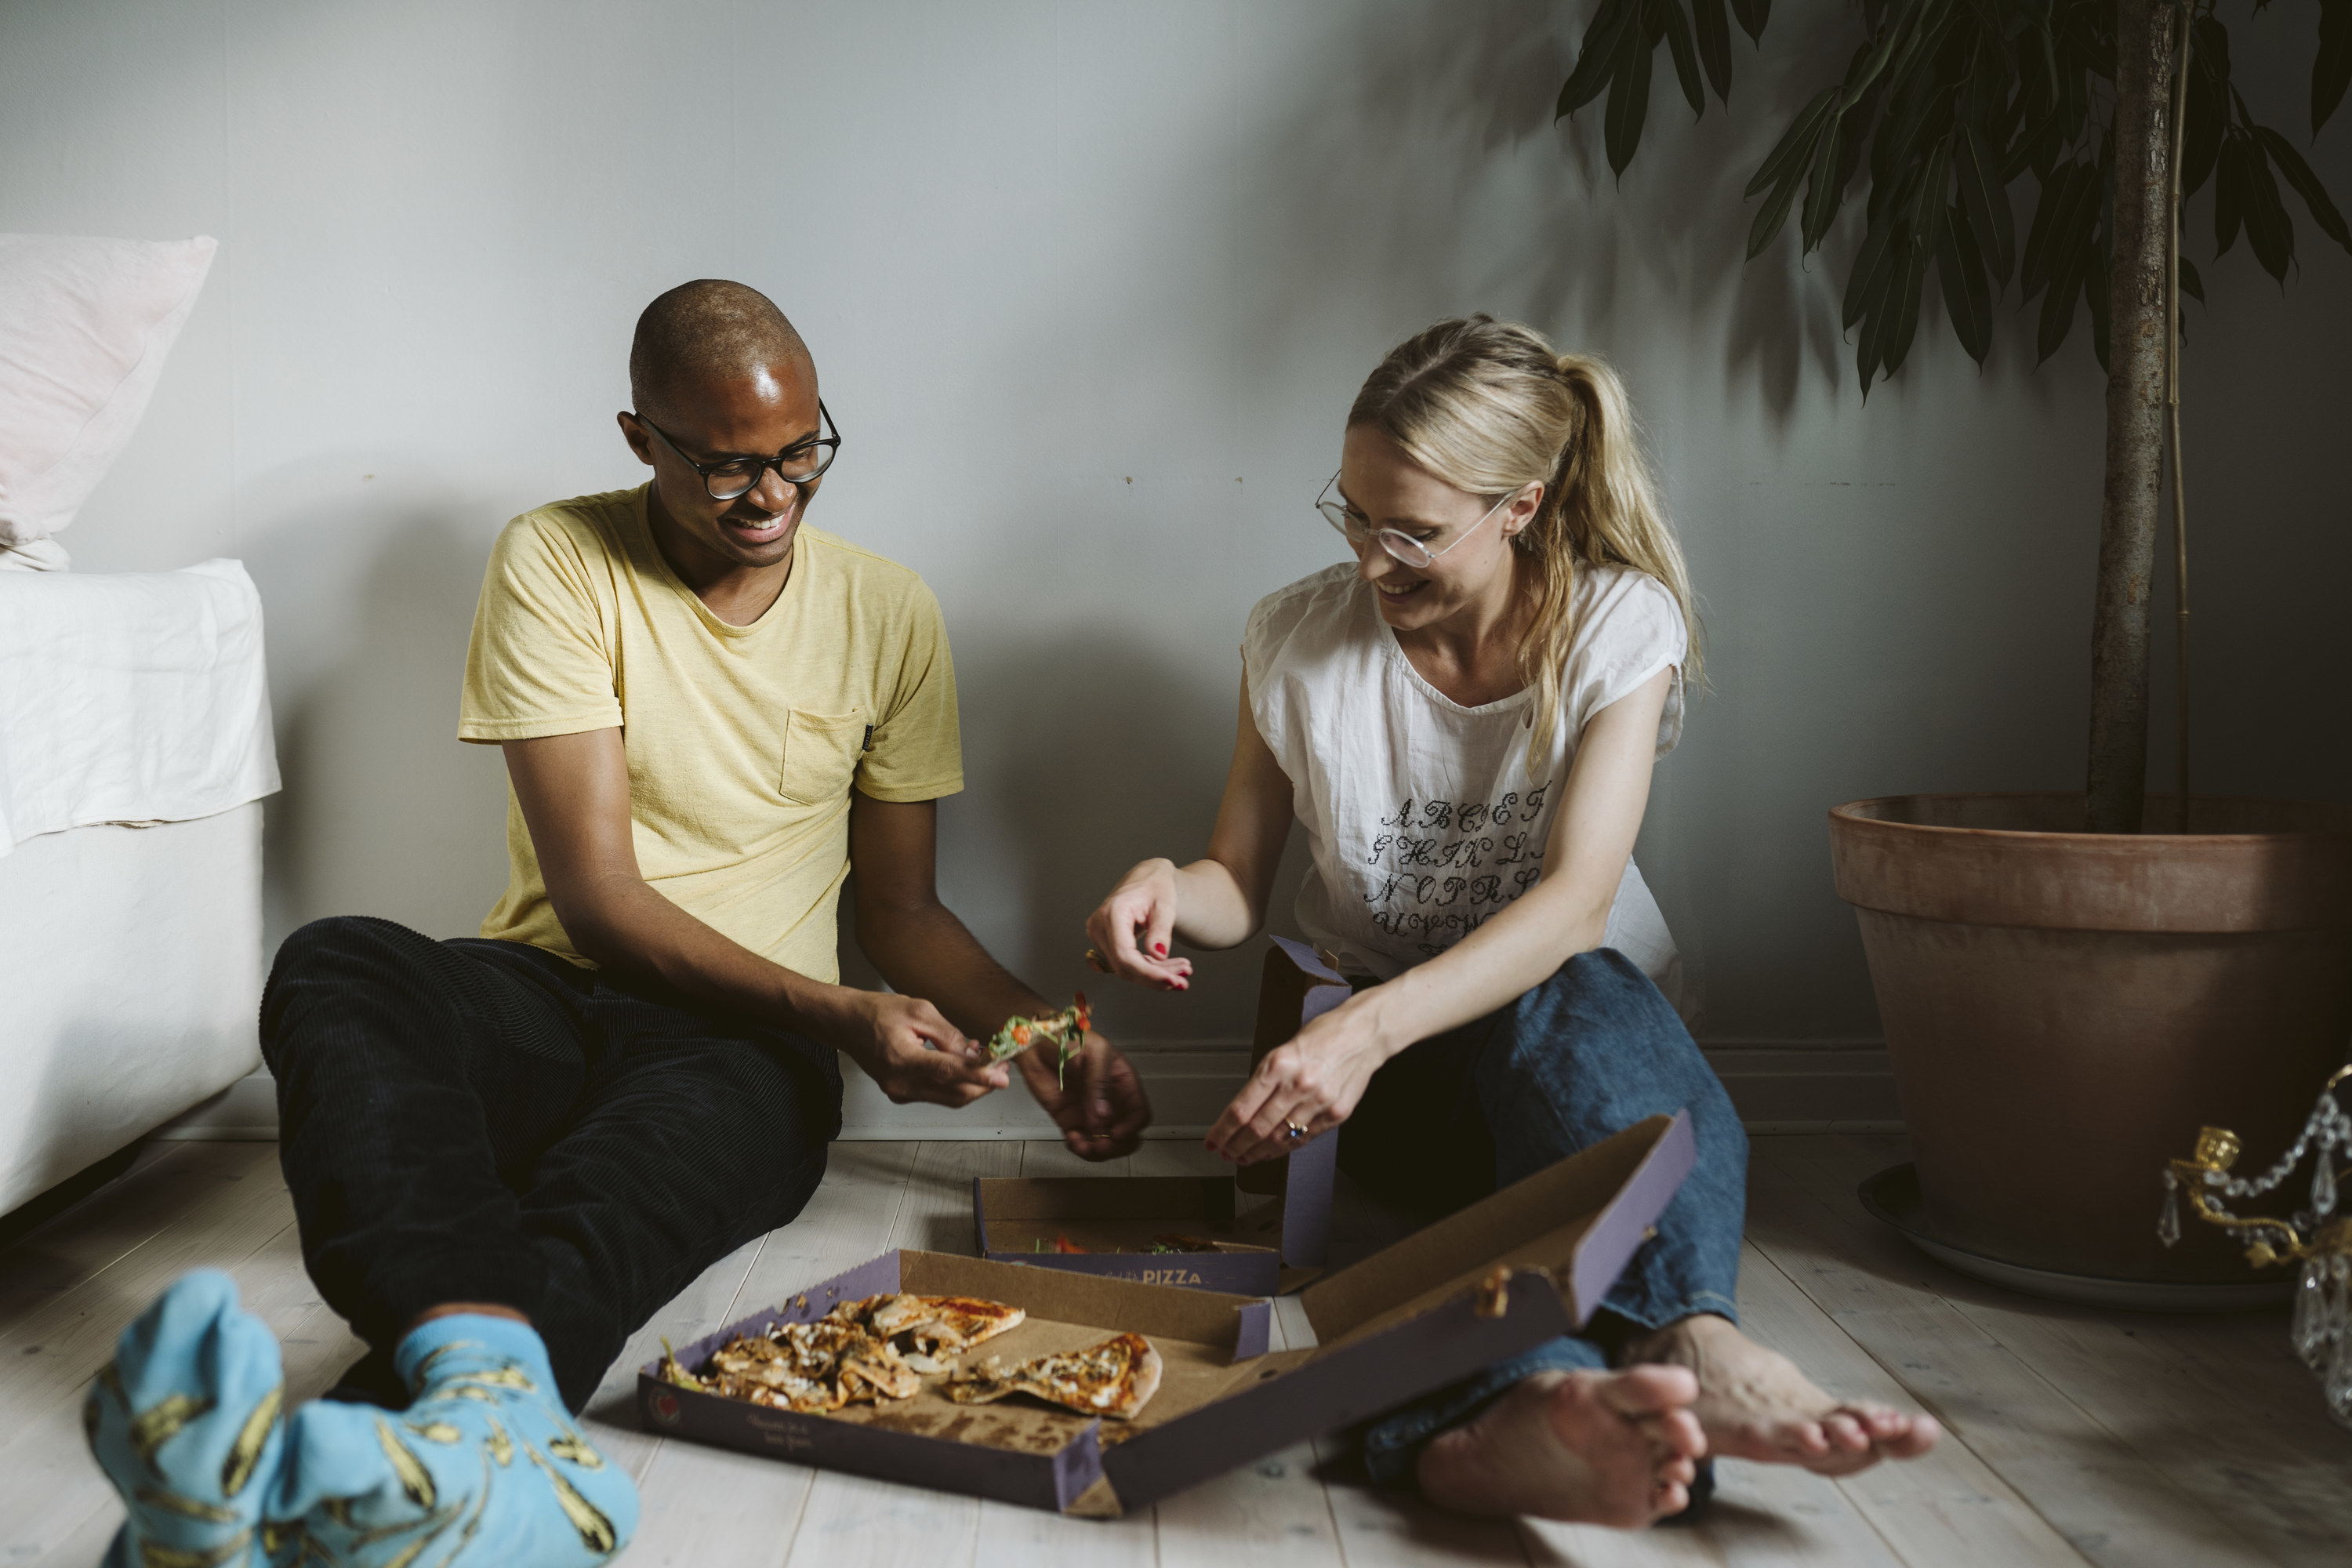 Two partners sitting on floor while eating delivery pizza out of a box